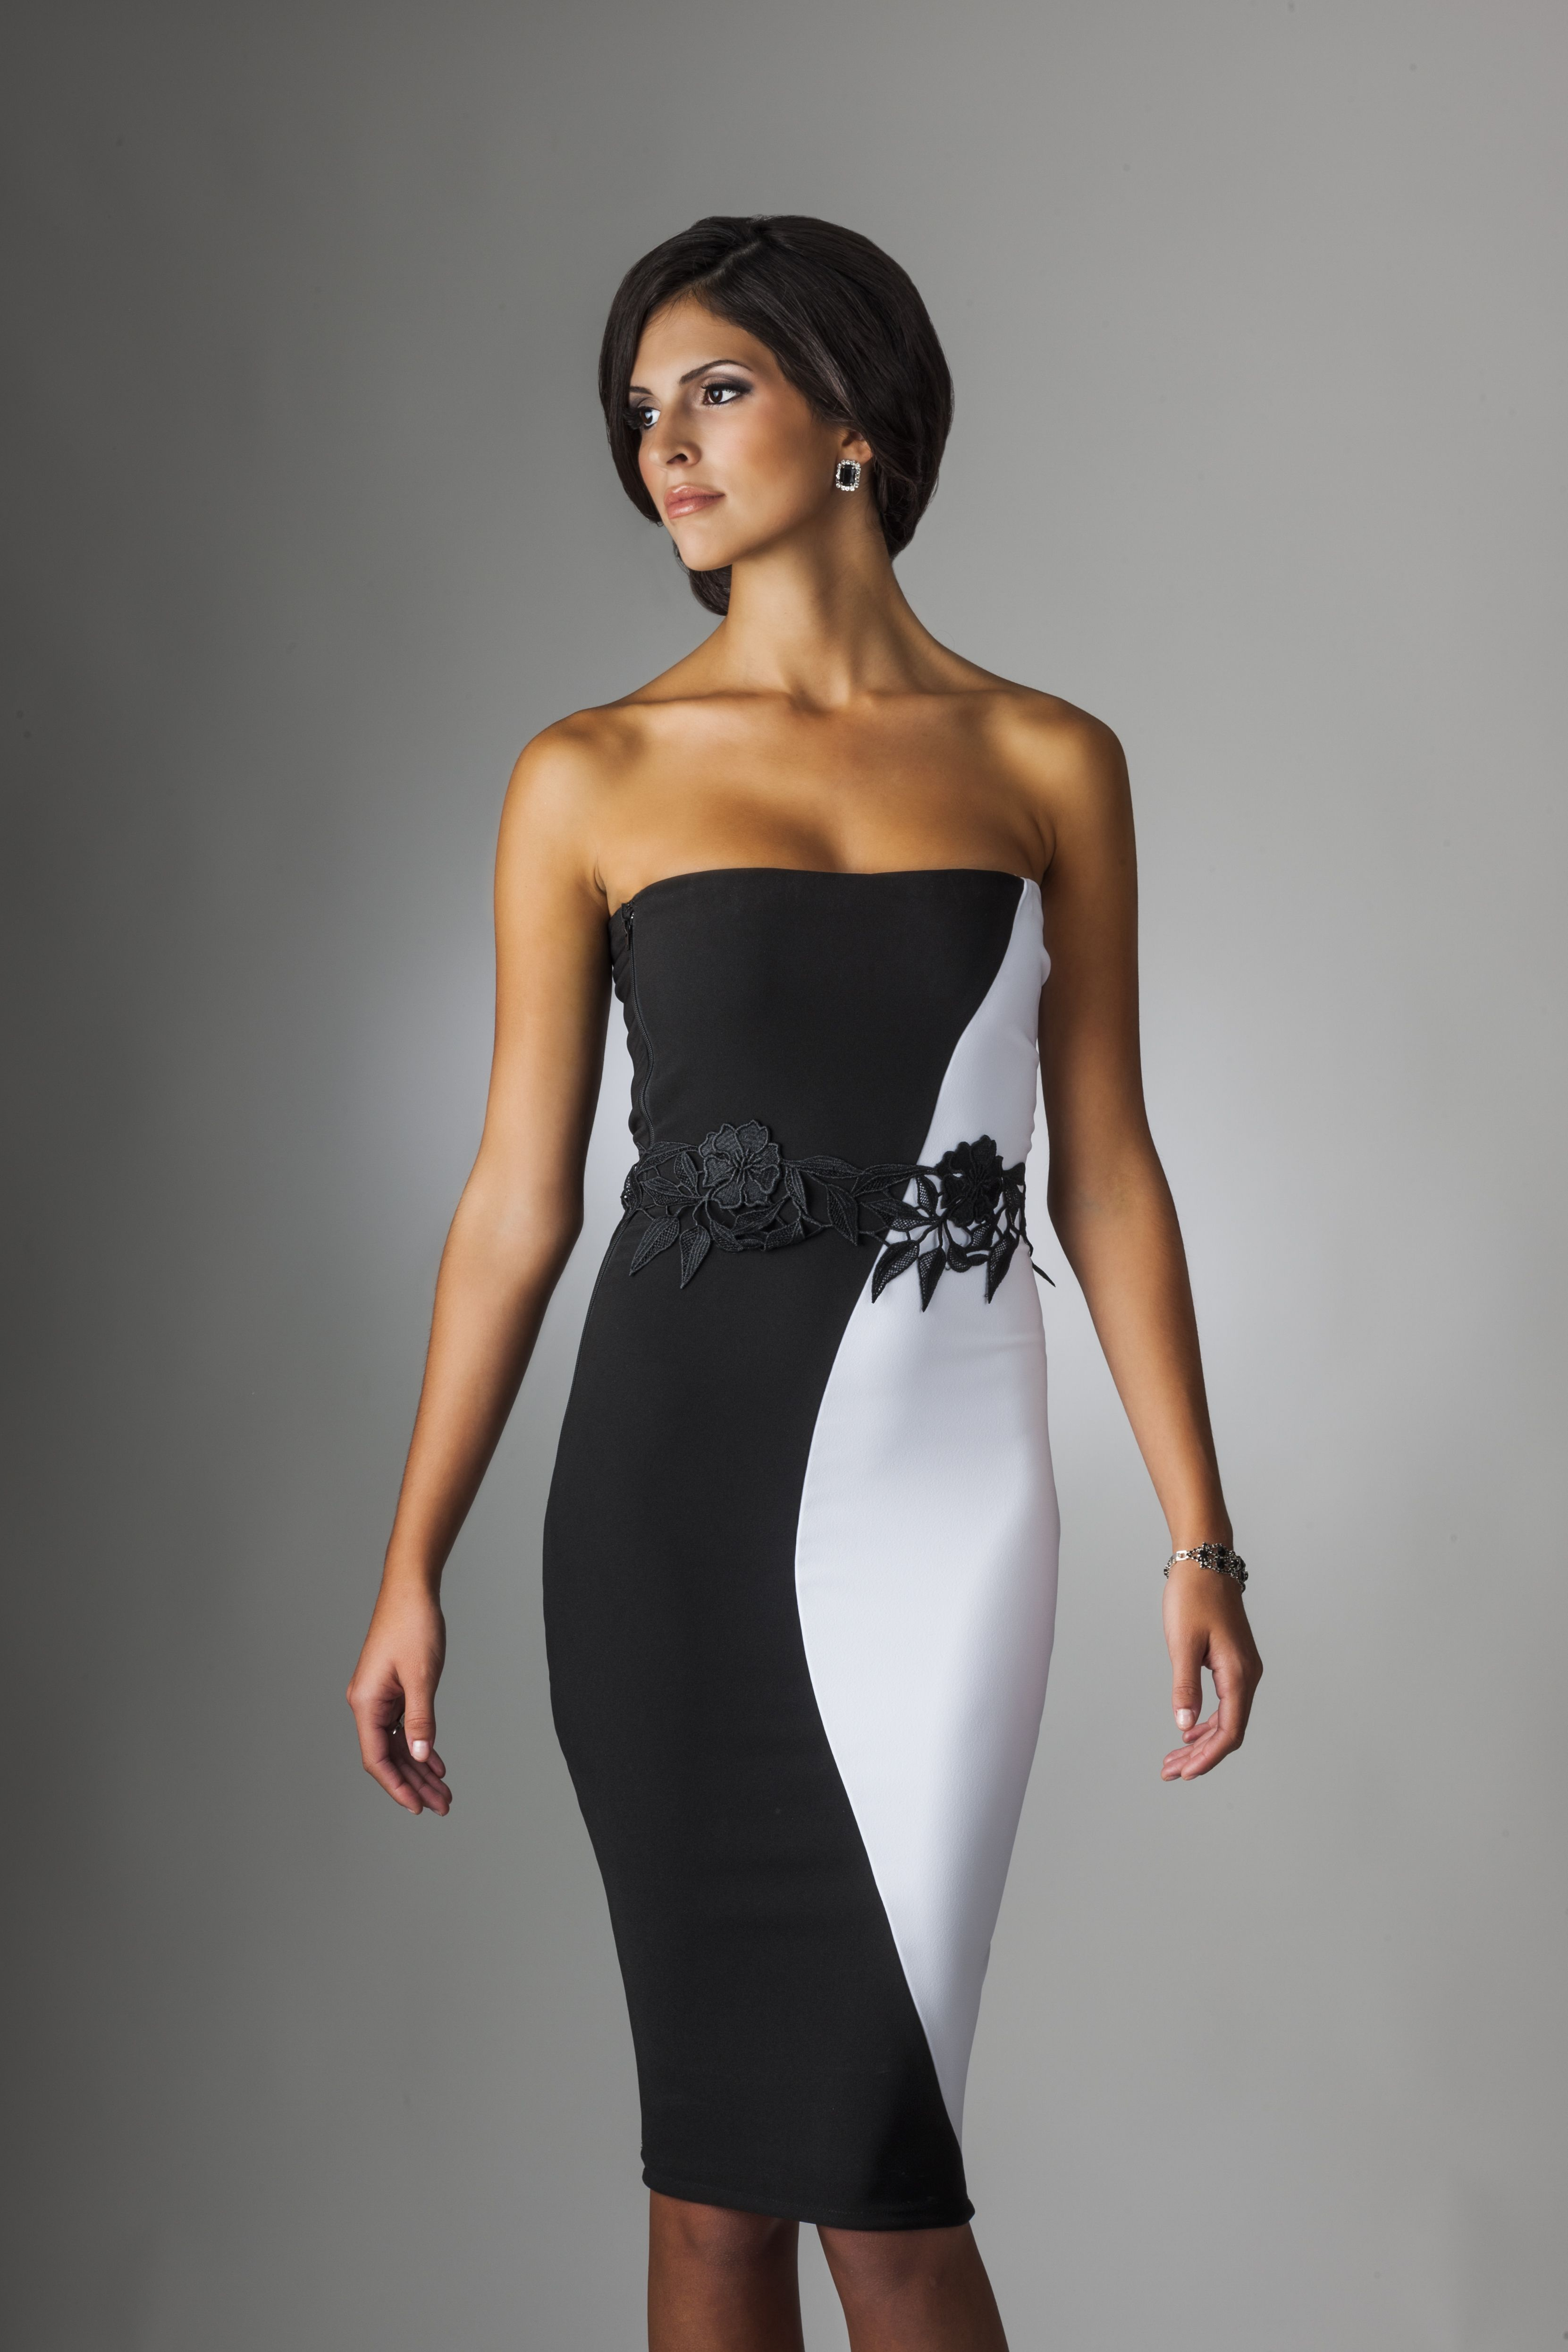 Evening gowns for weddings miracle robley pinterest 2015 general ideas sexy short evening dresses picturesque black and white cocktail dress amazing and captivating images landscape architect interior inspiration ombrellifo Image collections